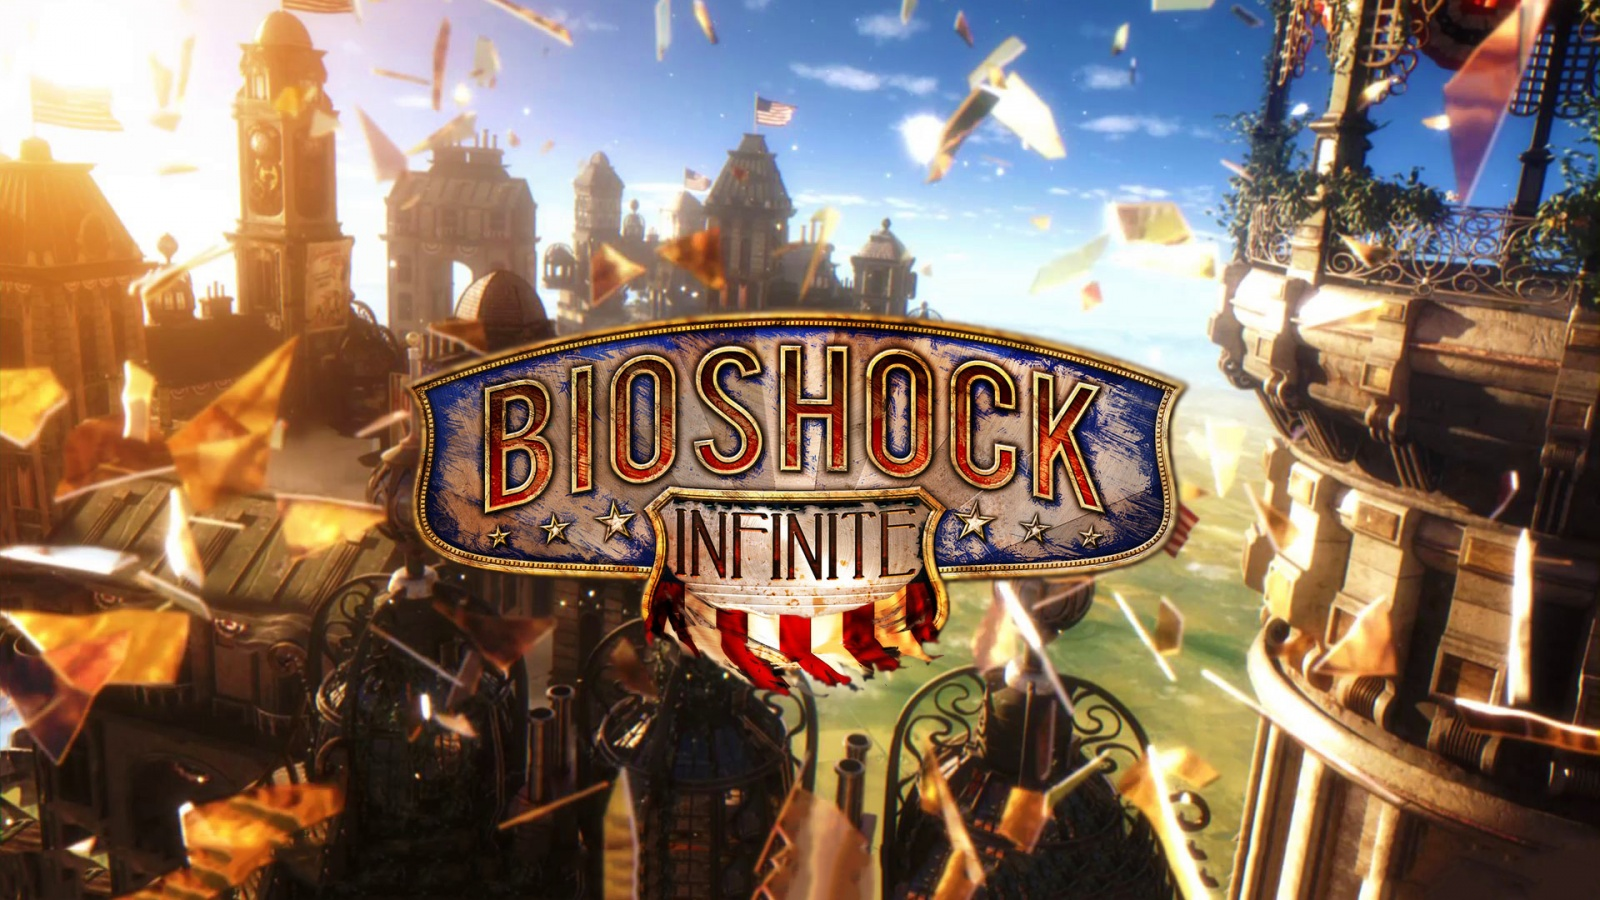 Bioshock infinite game Wallpaper in 1600x900 HD Resolutions